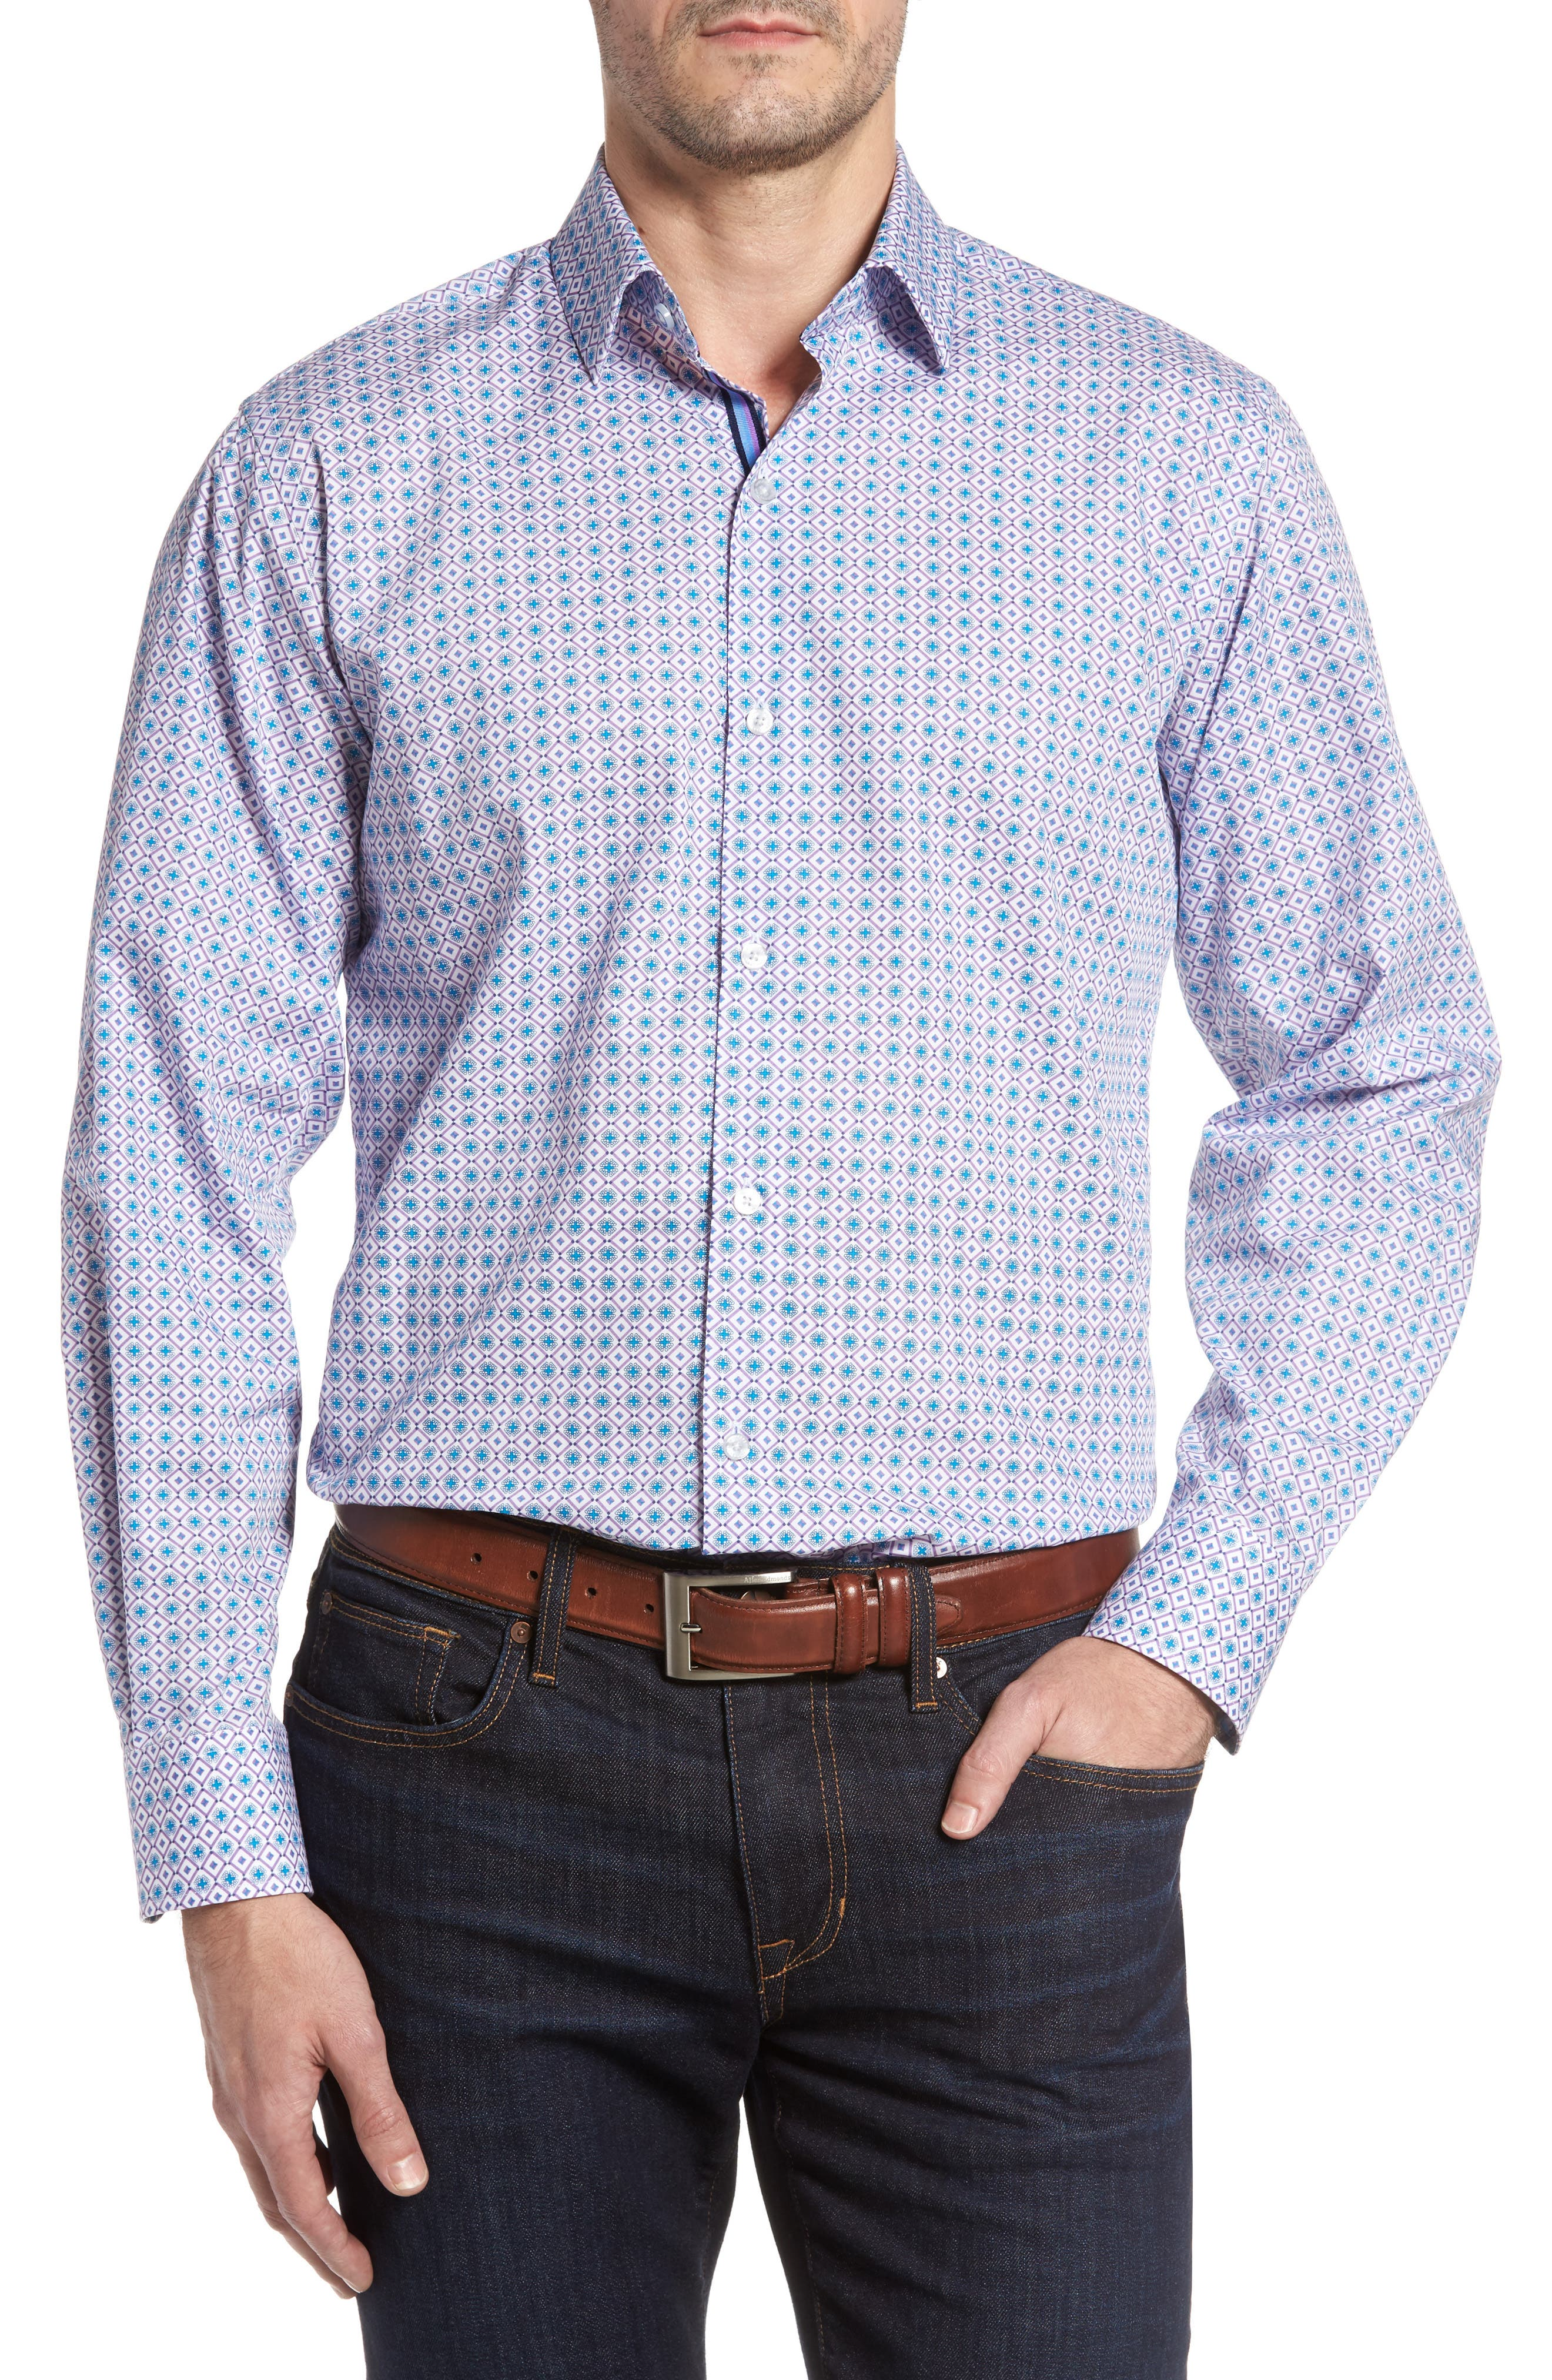 Main Image - TailorByrd Sycamore Print Sport Shirt